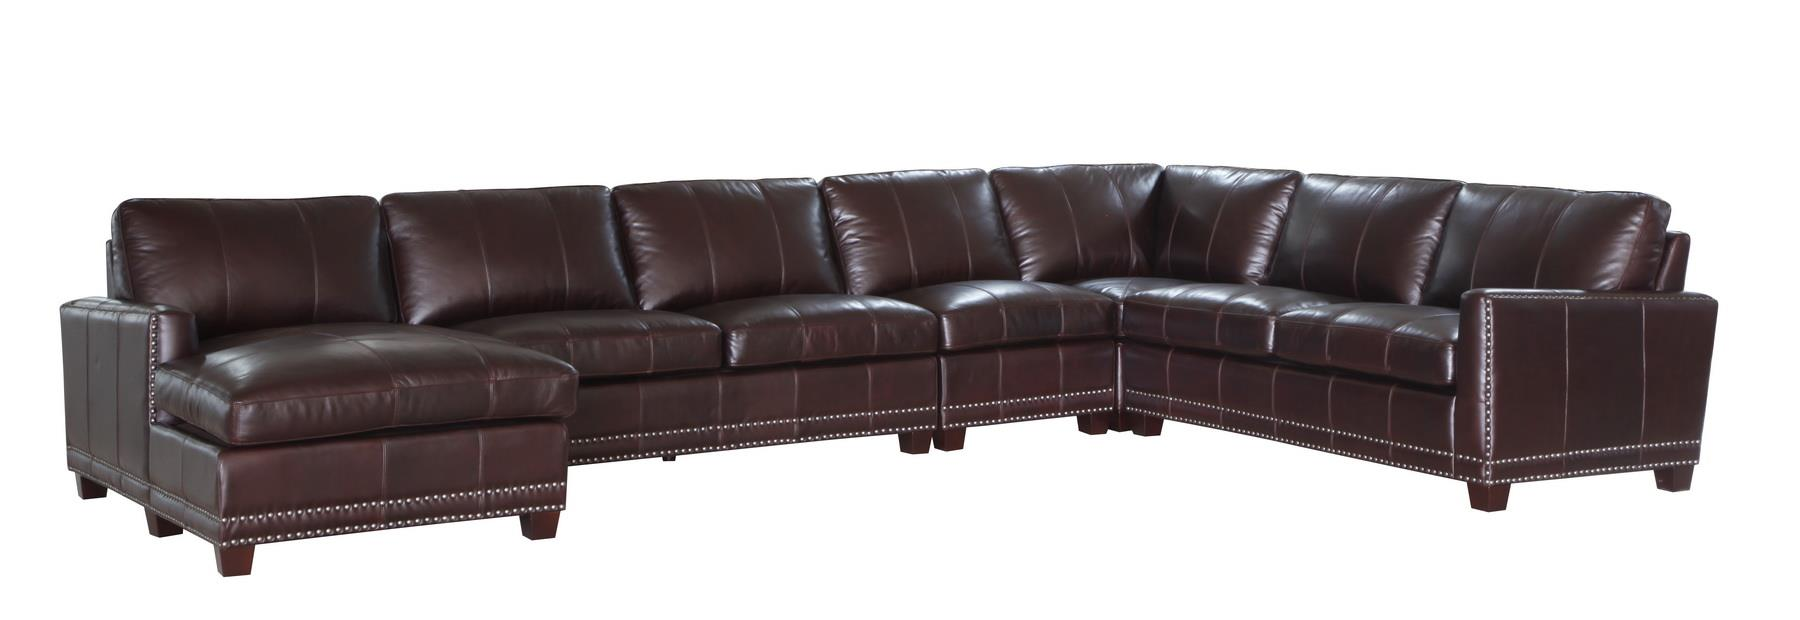 2 sofas armless chair and left facing chaise